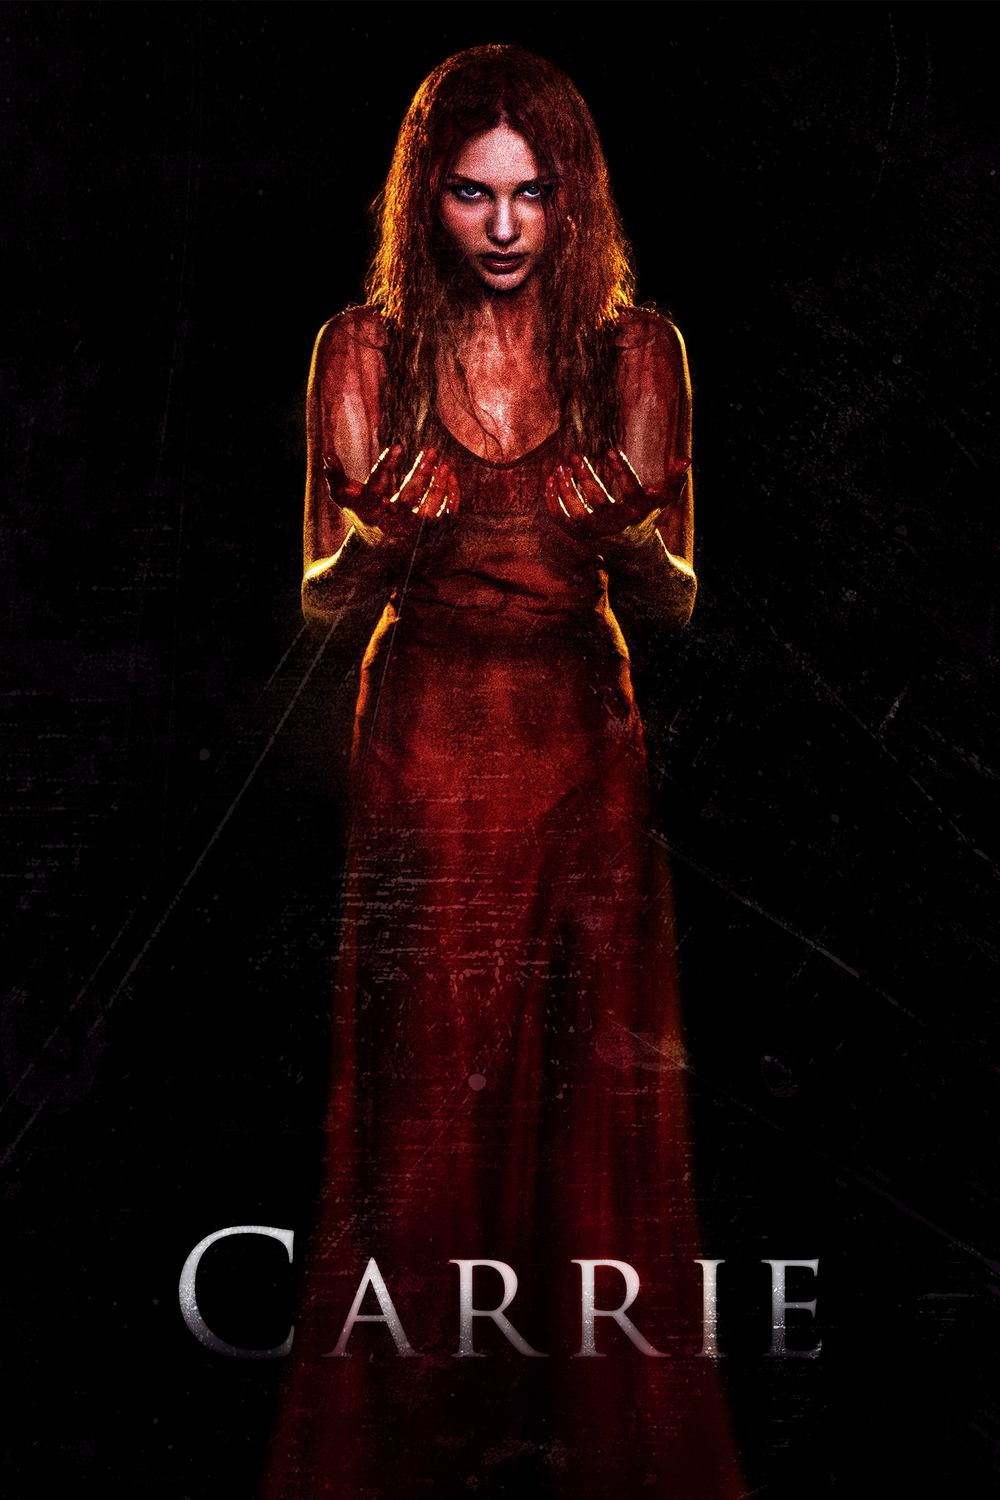 Carrie (2013 remake): Surprisingly good